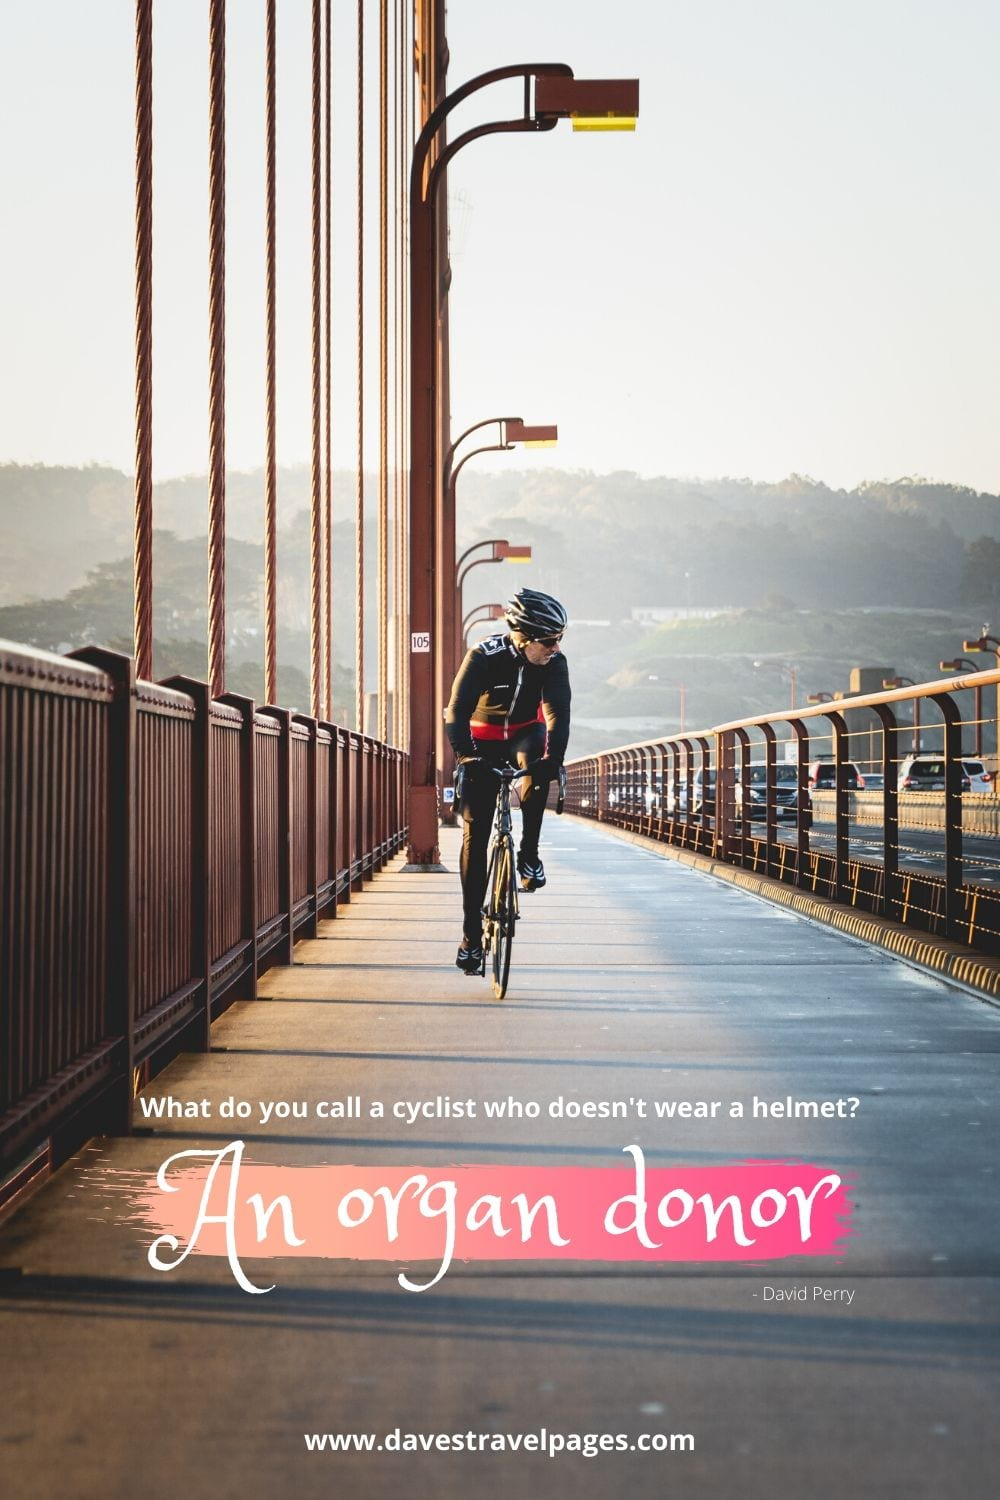 Funny bike quote - What do you call a cyclist who doesn't wear a helmet? An organ donor. ~David Perry